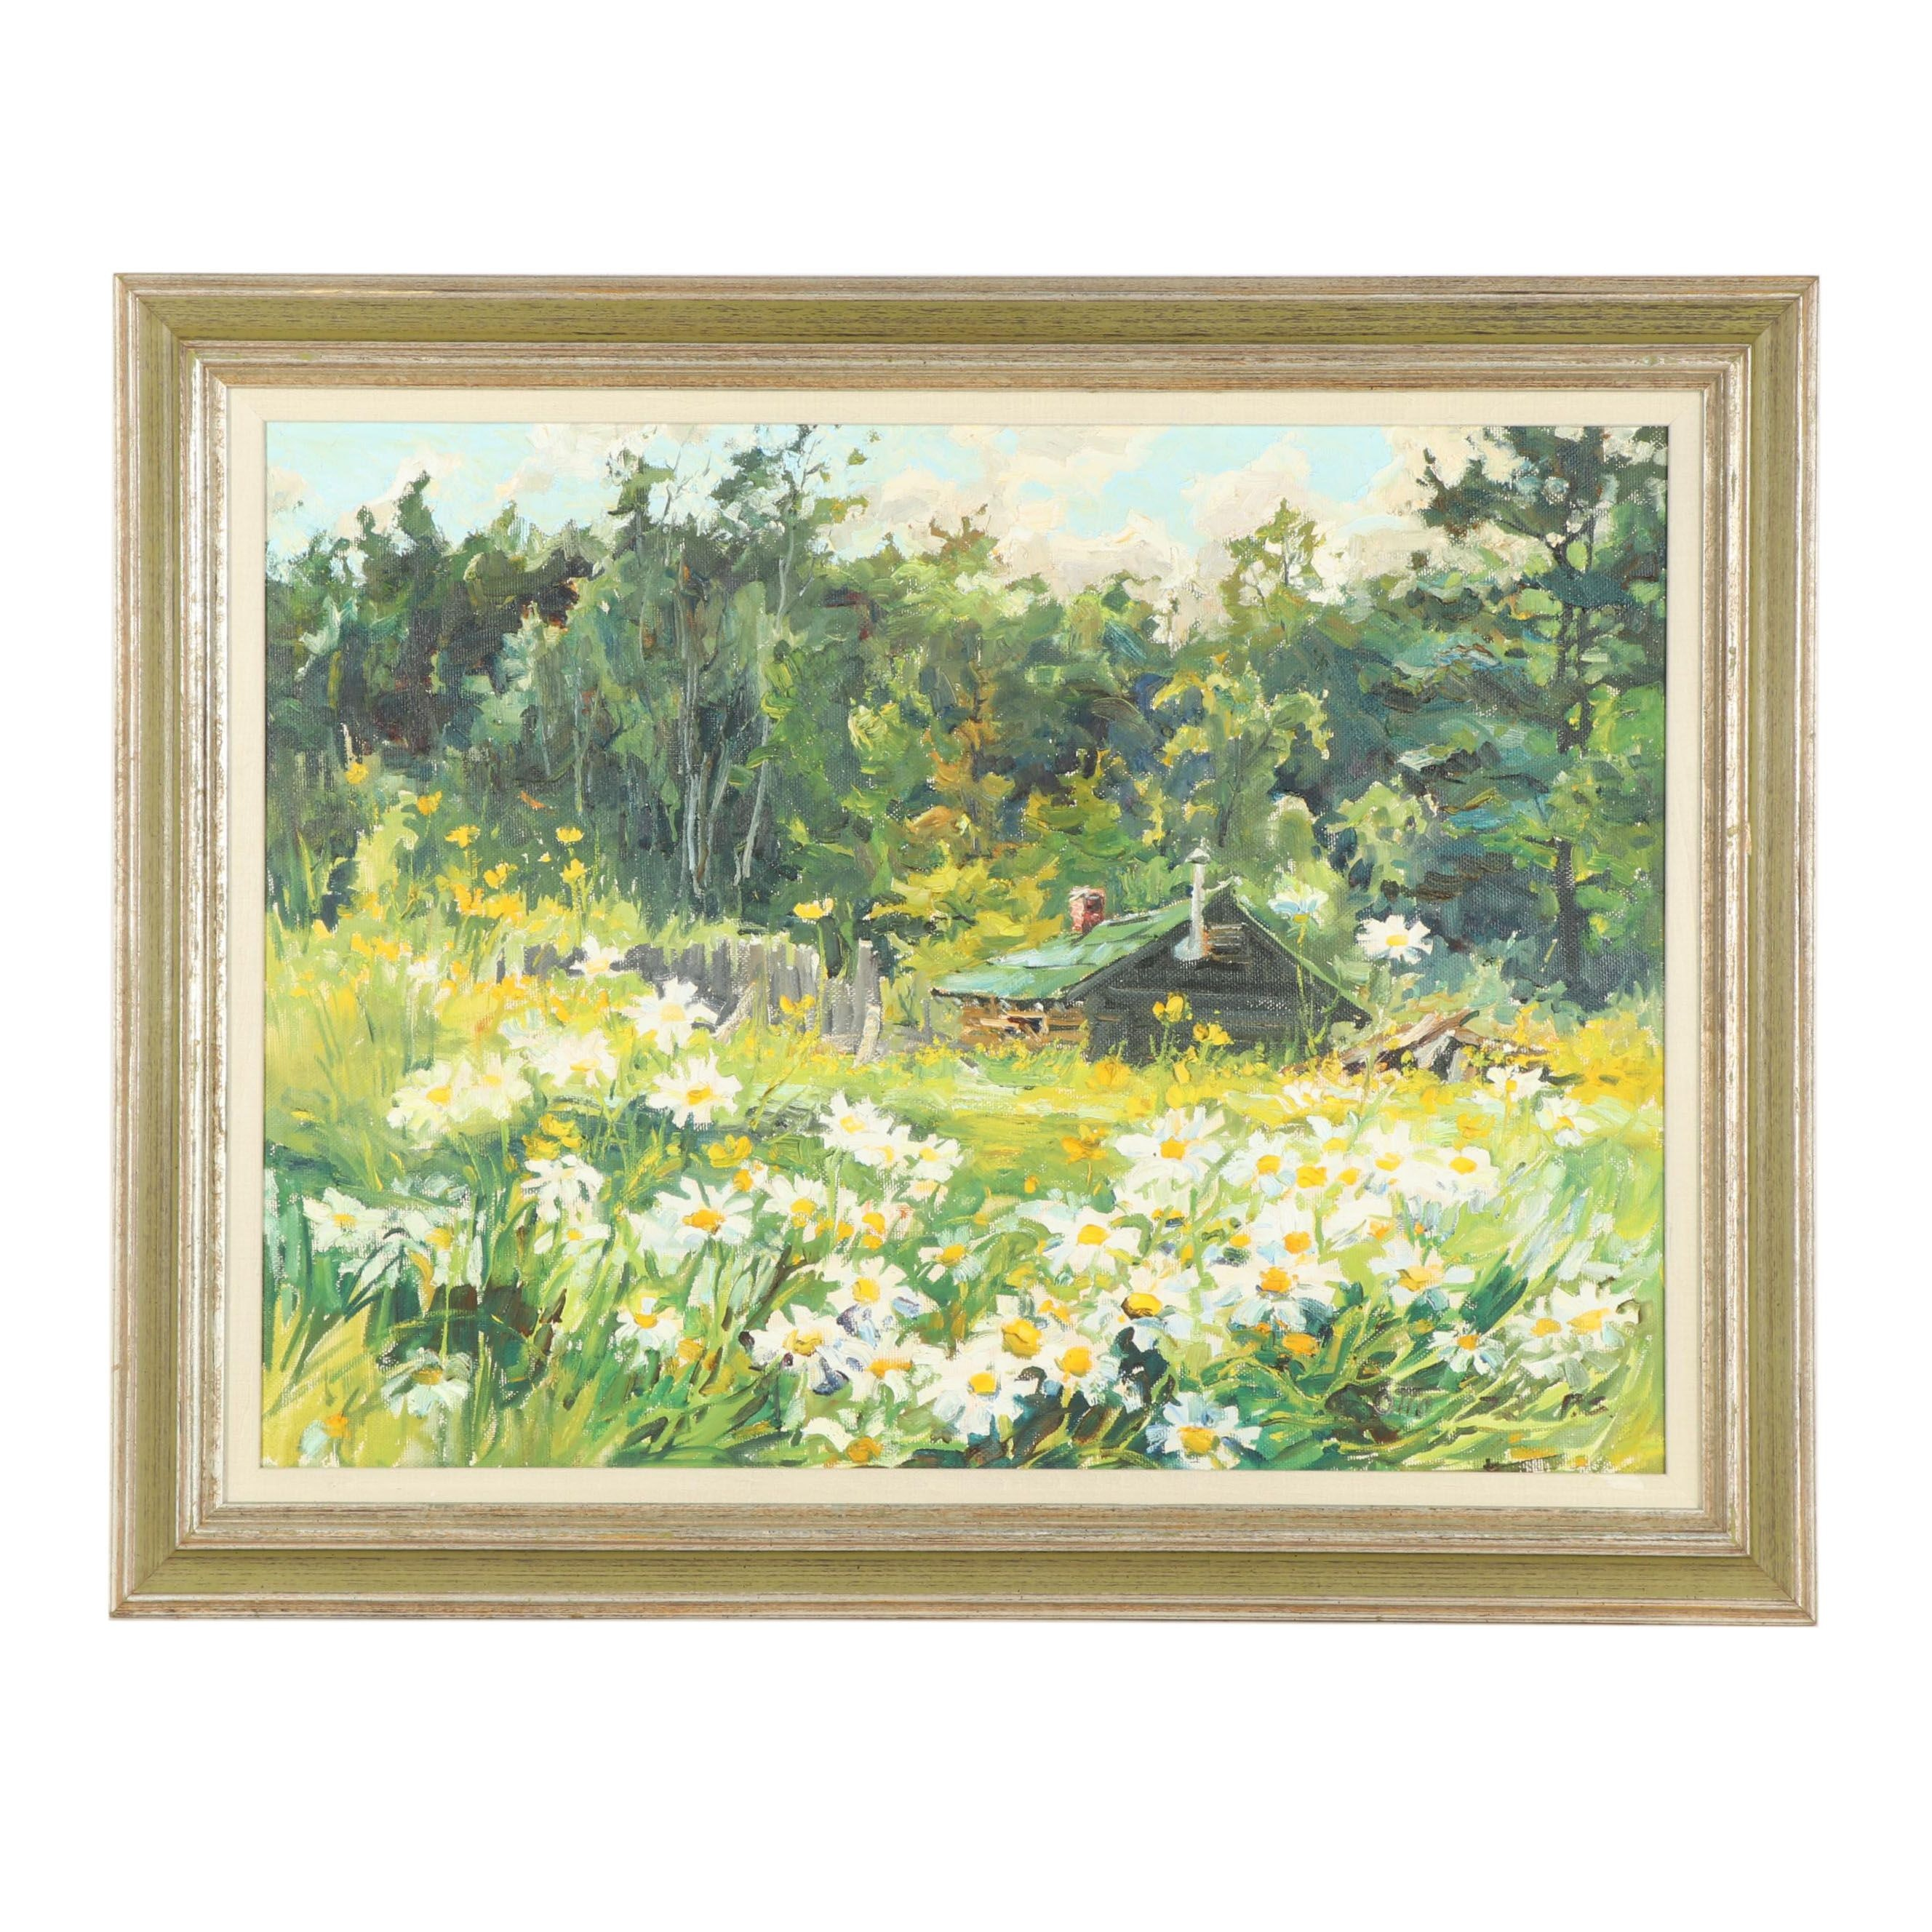 1972 Landscape with Daisies Oil Painting